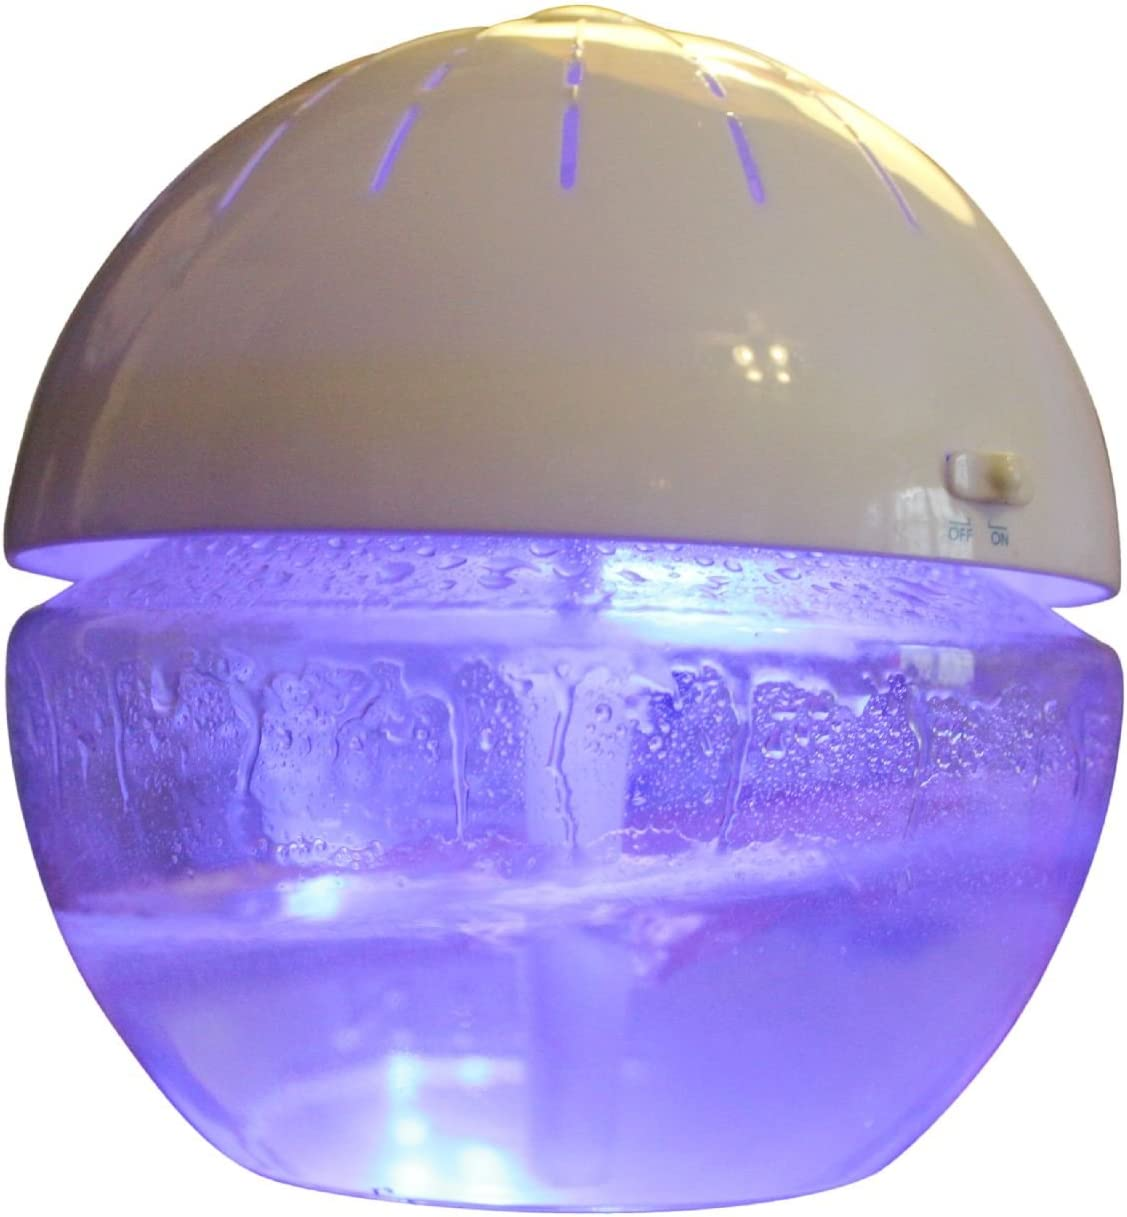 EcoGecko Earth Globe- Glowing Water Air Washer and Revitalizer with Lavender Oil, White